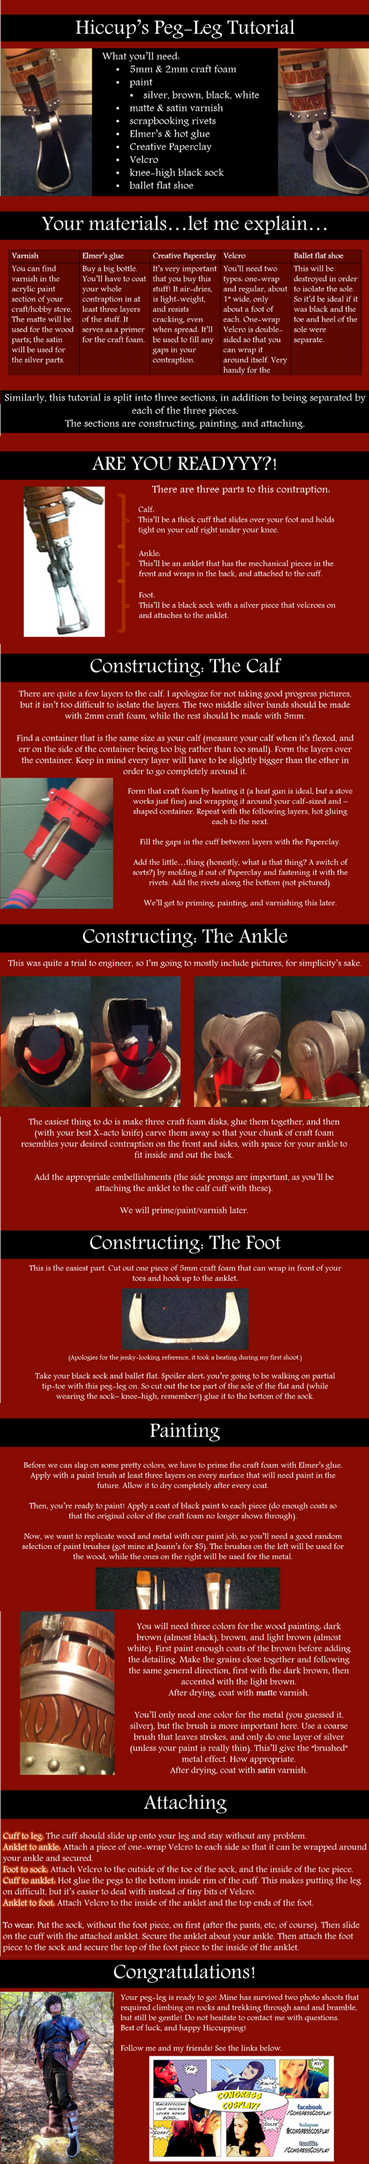 Hiccup's Peg-Leg/False Foot Cosplay Tutorial